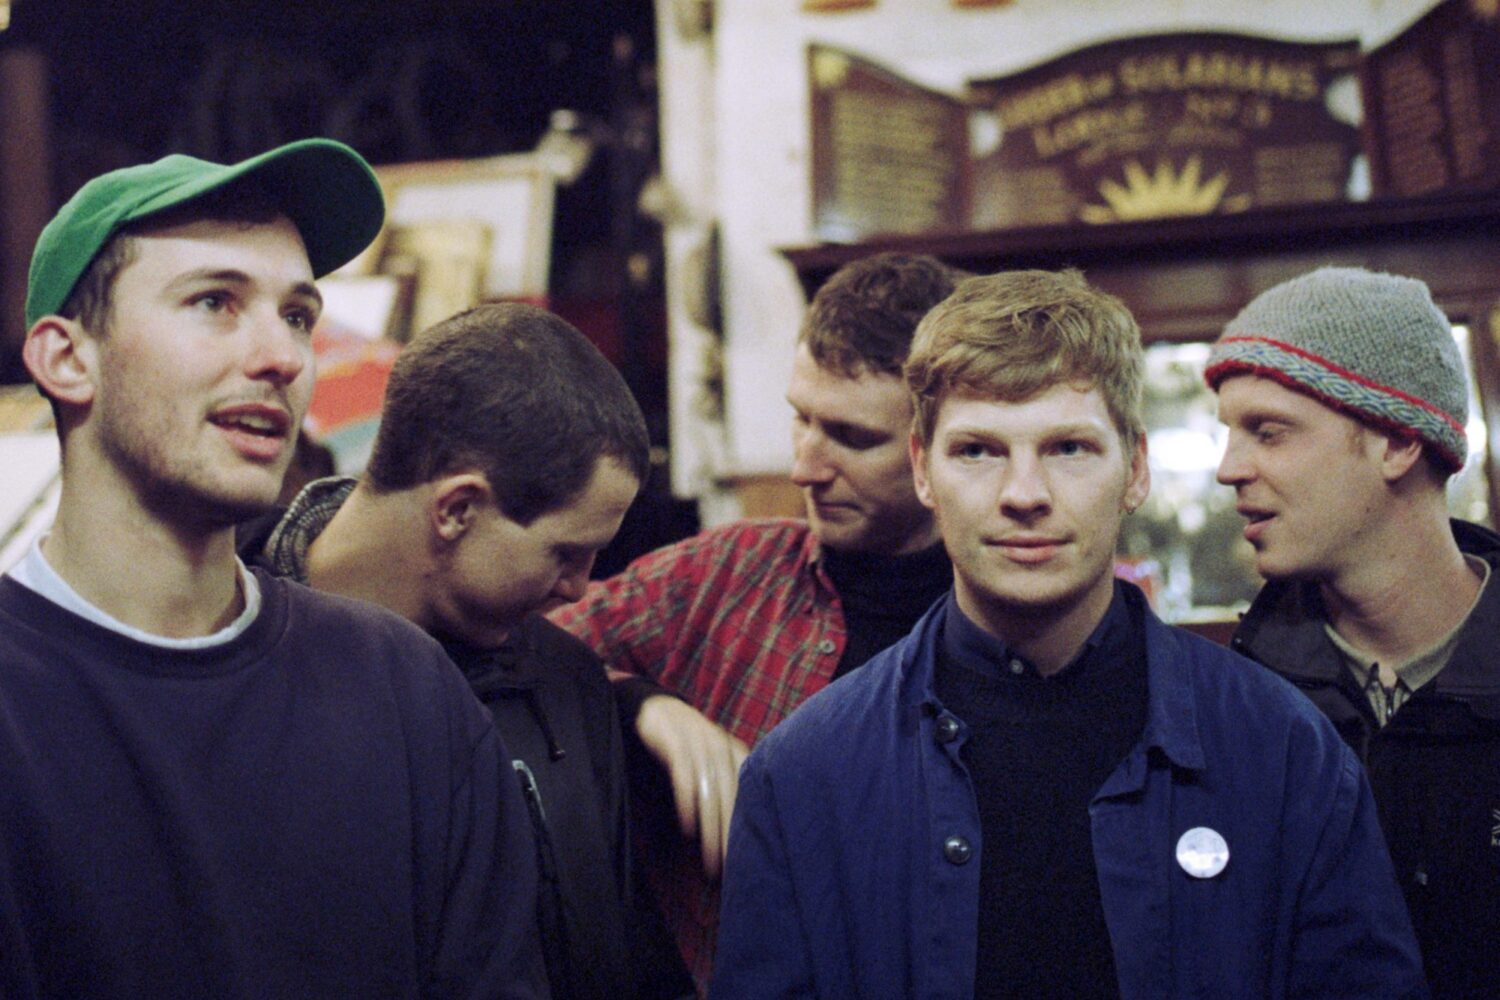 Squid are back with brand new banger 'The Cleaner'